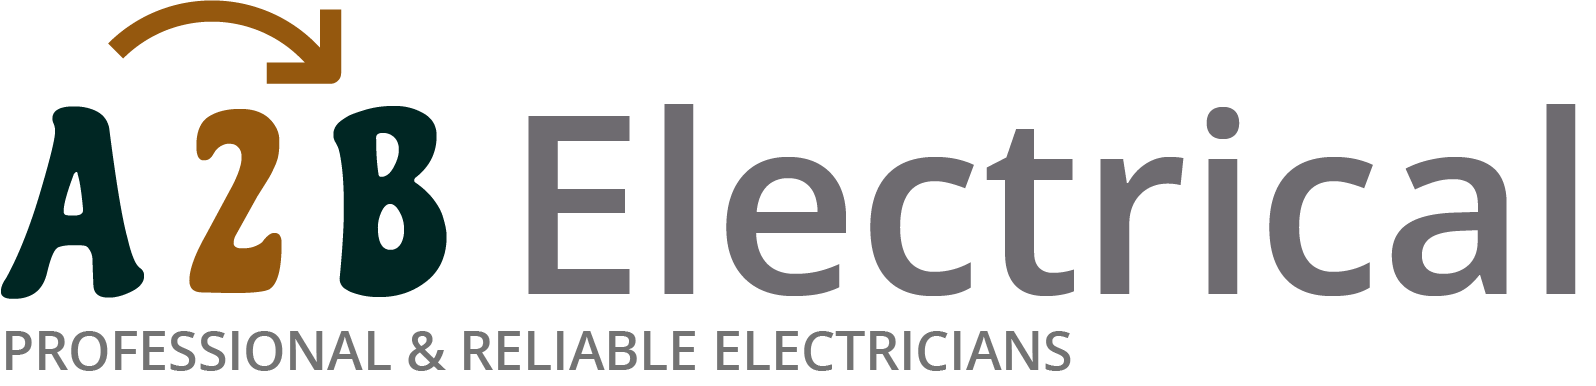 If you have electrical wiring problems in Hither Green, we can provide an electrician to have a look for you.